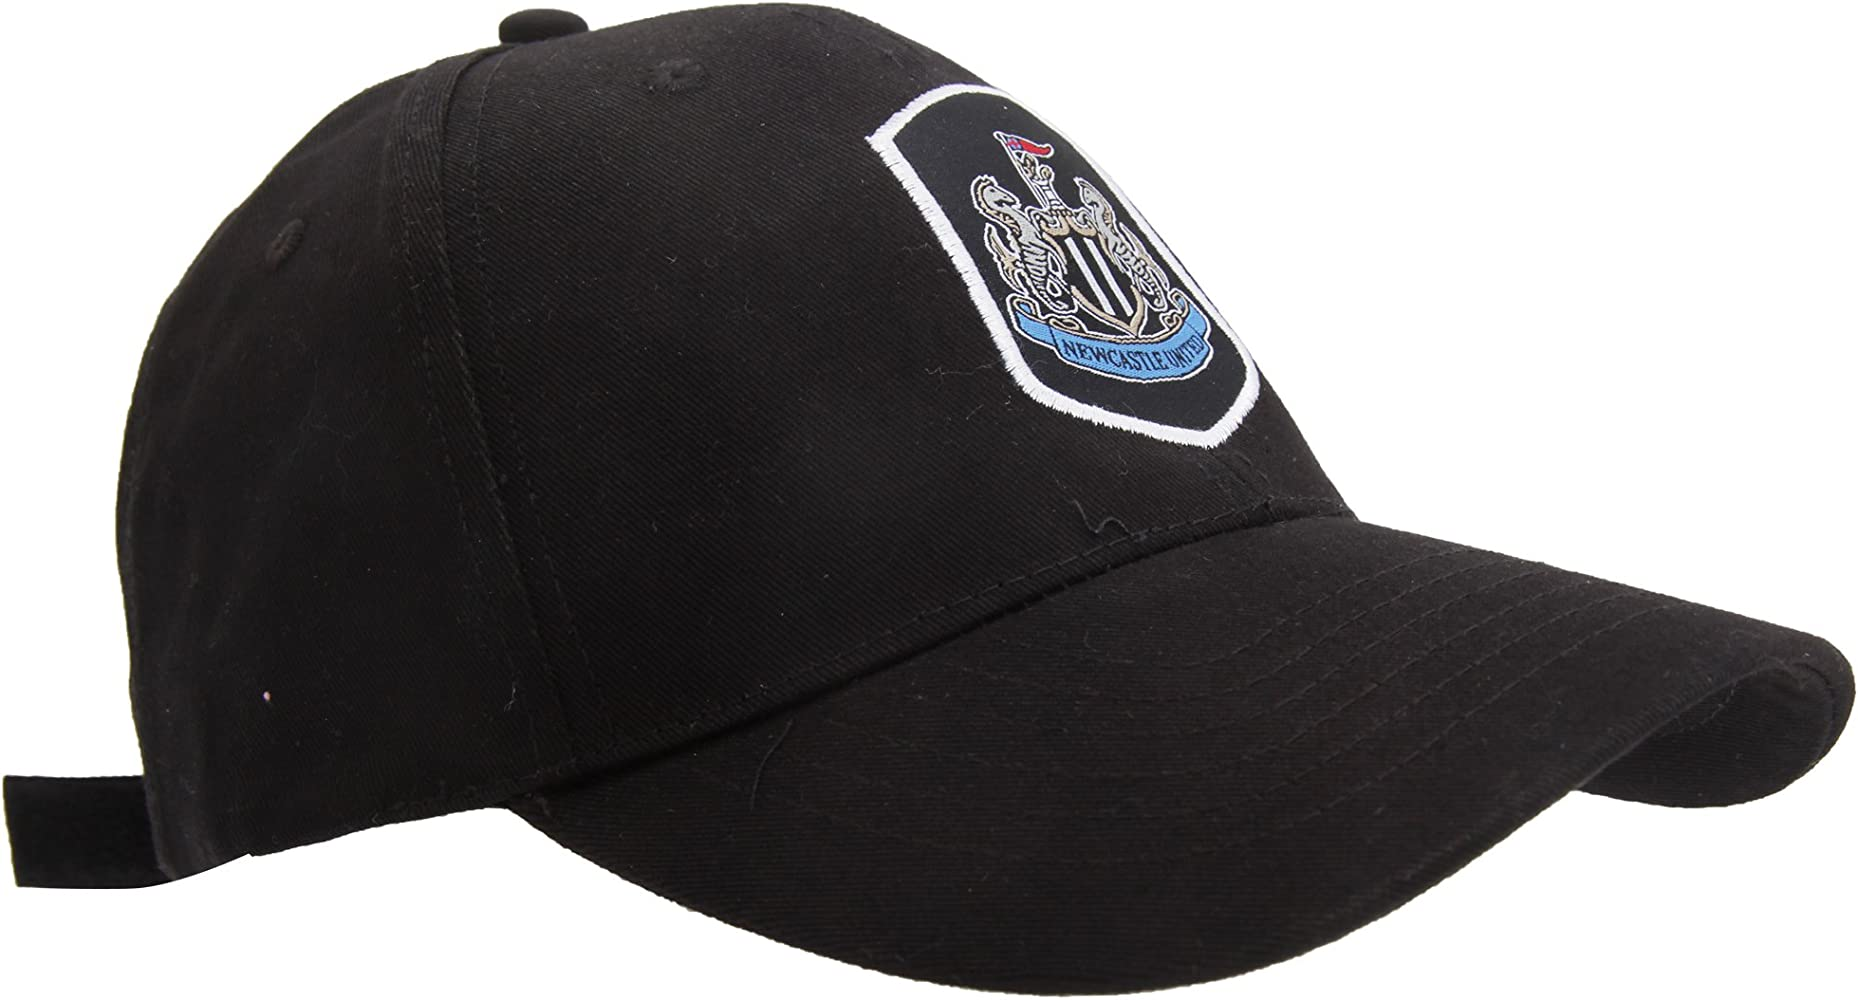 Newcastle United FC - Gorra Oficial Modelo Crest Football (Talla ...